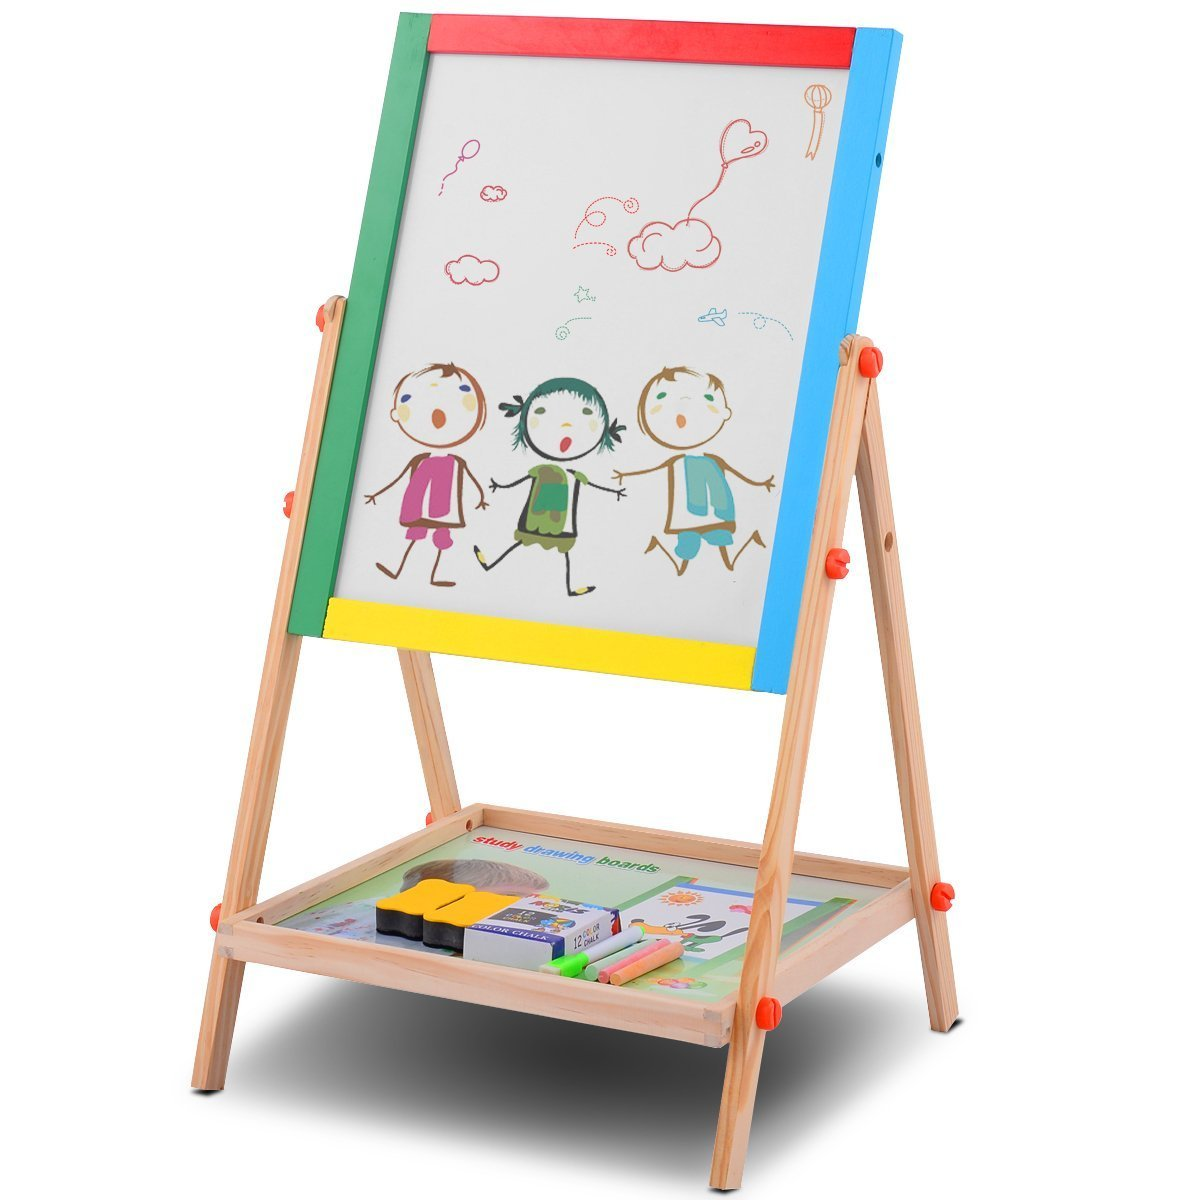 Costzon 2 In 1 Kids Easel, Double Sided Adjustable Chalk Blackboard & White Dry Erase Surface, Magnetic Sponge, Marker Pen, 12 PCS Chalks & Bottom Tray, Wood Standing Easel for Toddlers